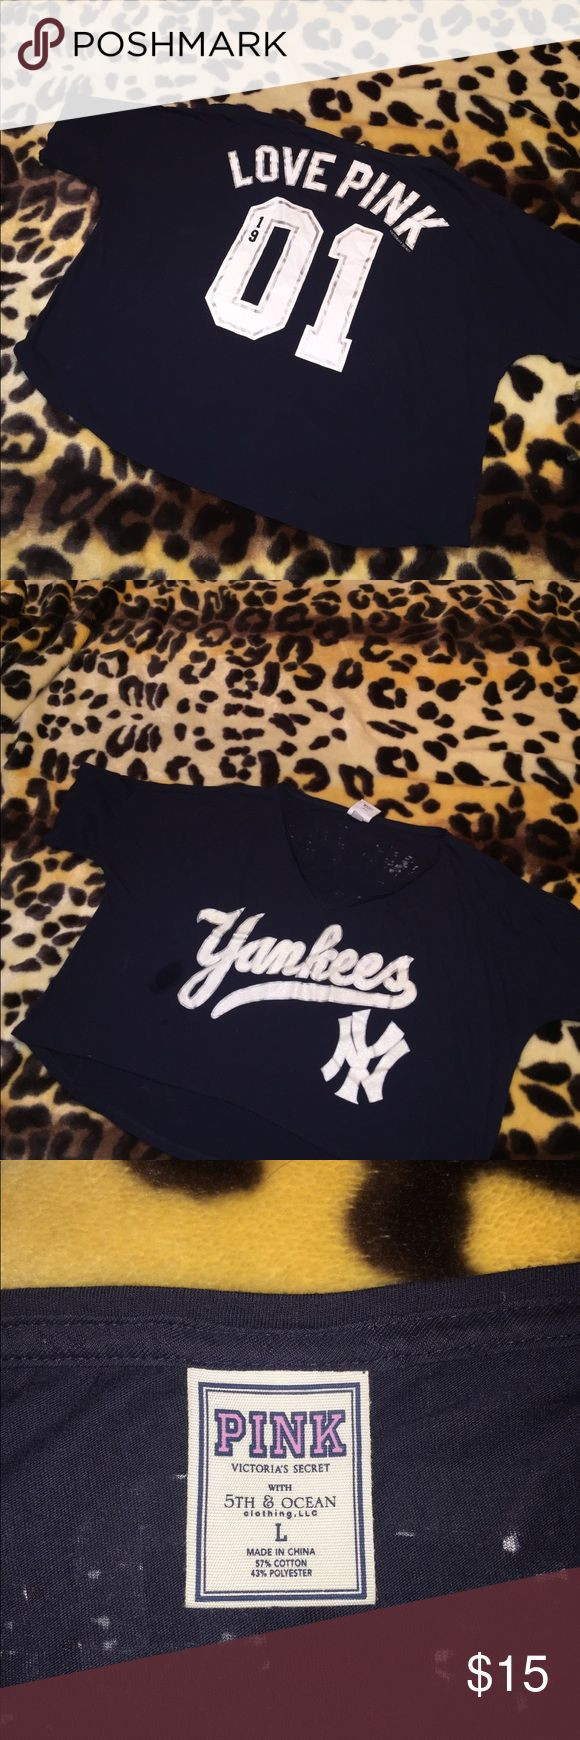 Victoria's Secret pink Yankees baseball half shirt Victoria's Secret pink navy blue with white glittered lettering New York Yankees baseball half shirt. This is a belly shirt. Size large.  I am open to reasonable offers. 15% bundle discount on 3 or more items. Smoke free home. Happy poshing! 😊 PINK Victoria's Secret Tops Tees - Short Sleeve